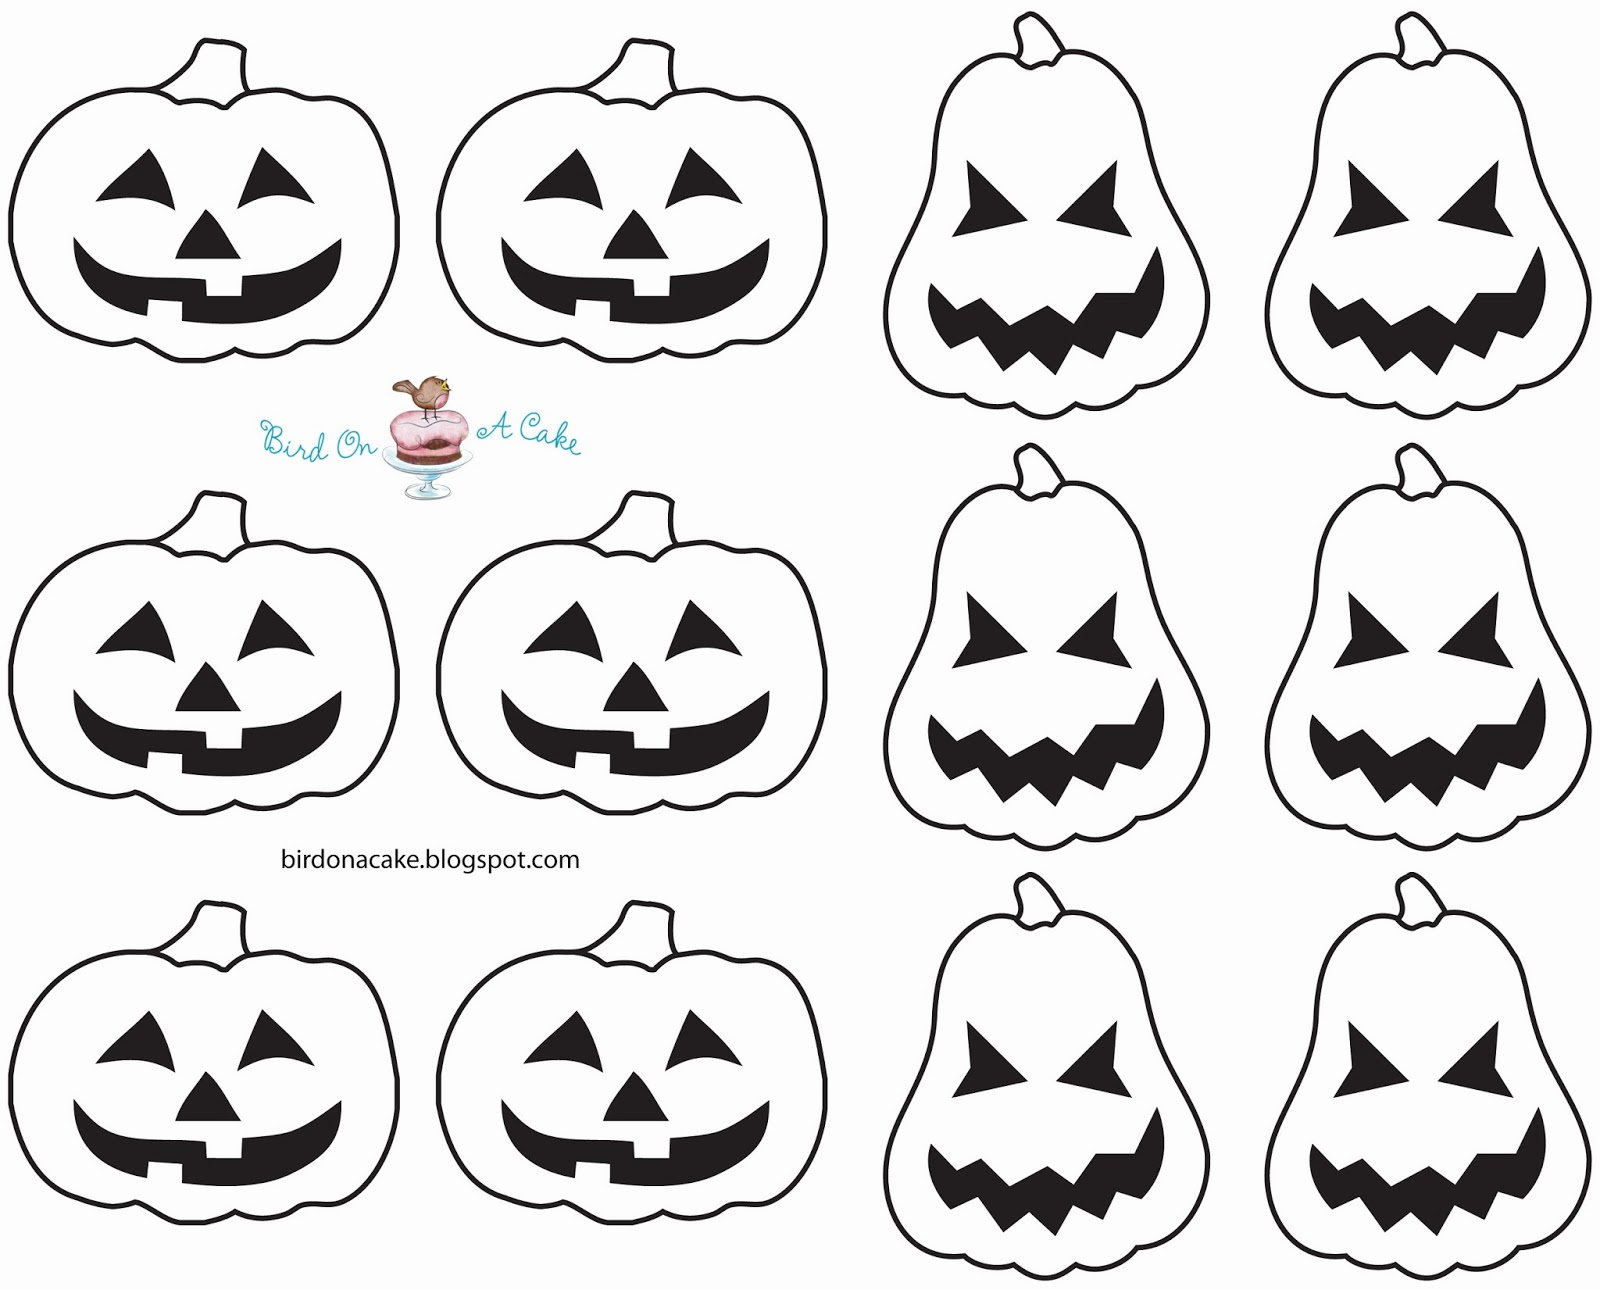 Bird On A Cake: Jack-O-Lantern Cupcake Toppers with Template